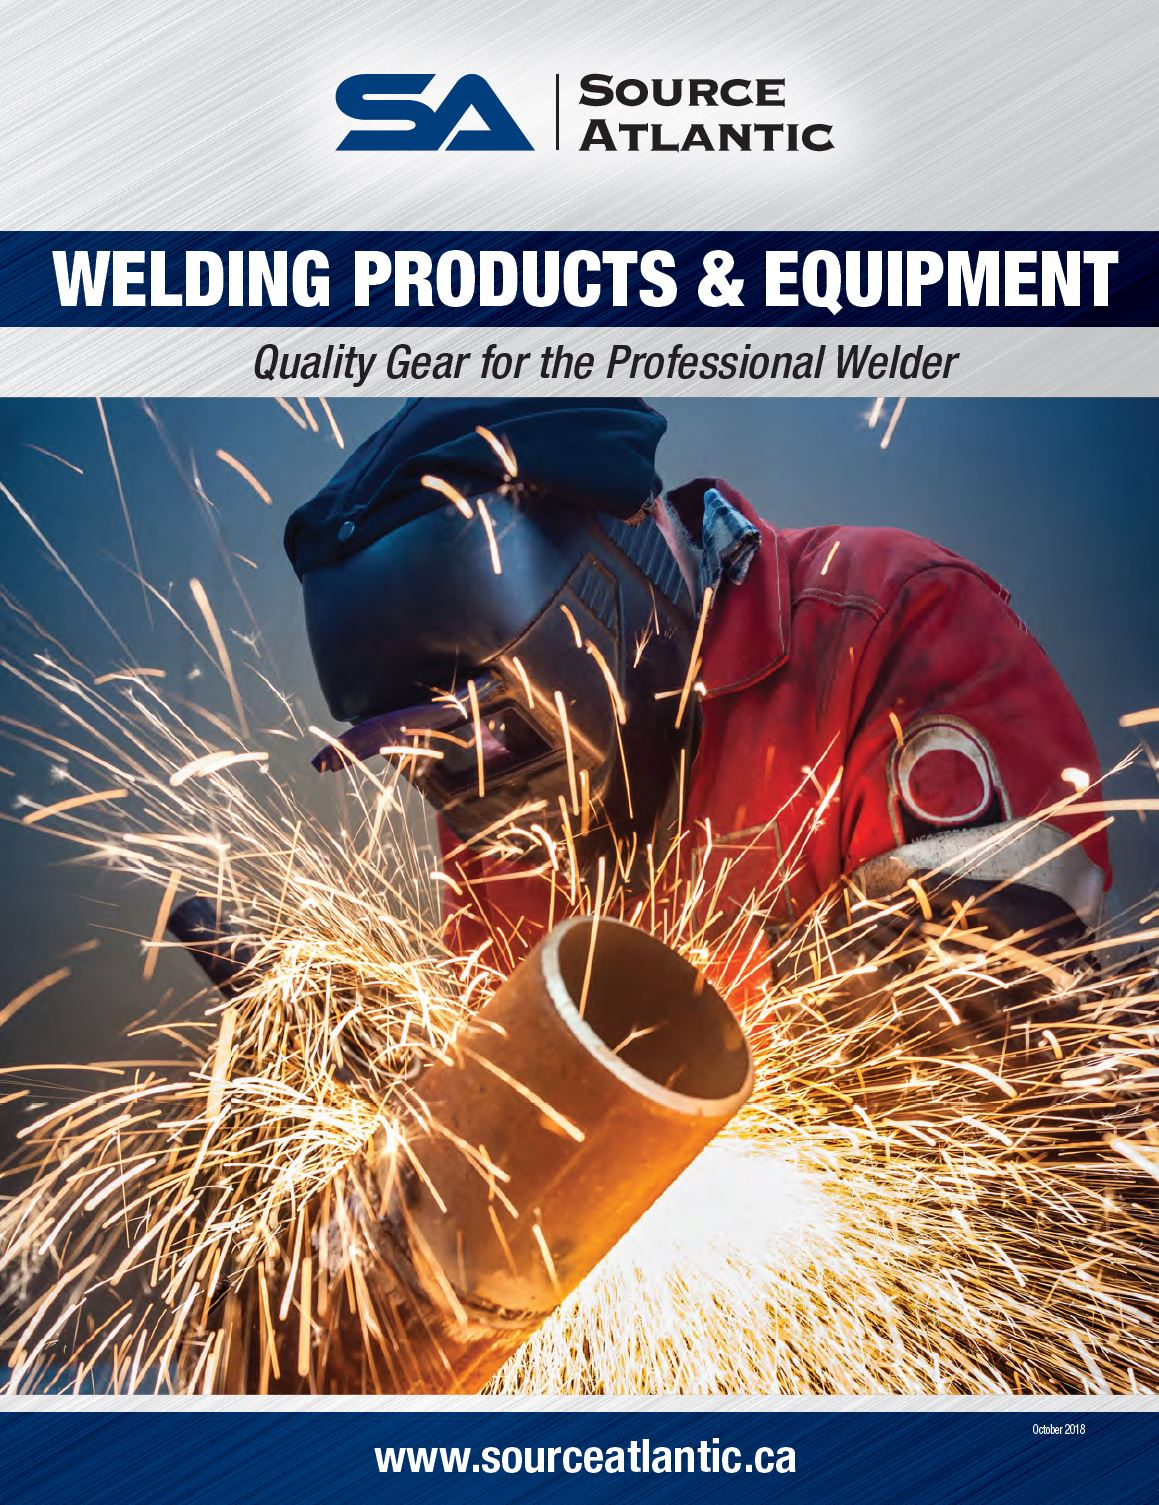 WELDING PRODUCTS & EQUIPMENT